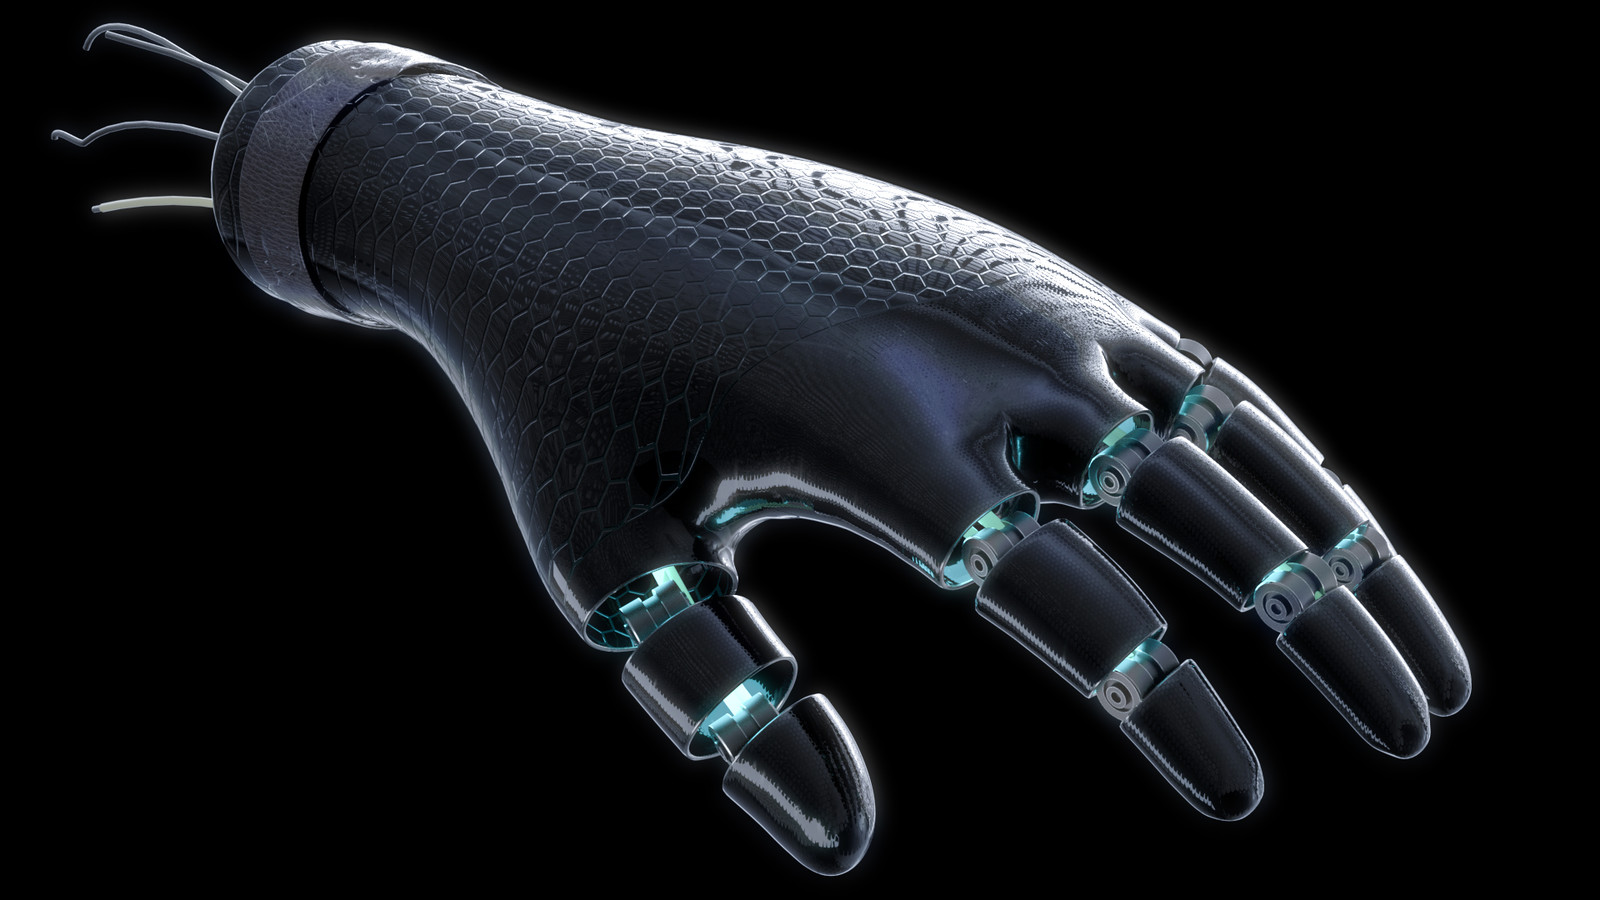 Cyborg prosthetic hand rendered in Redshift with Cinema 4D